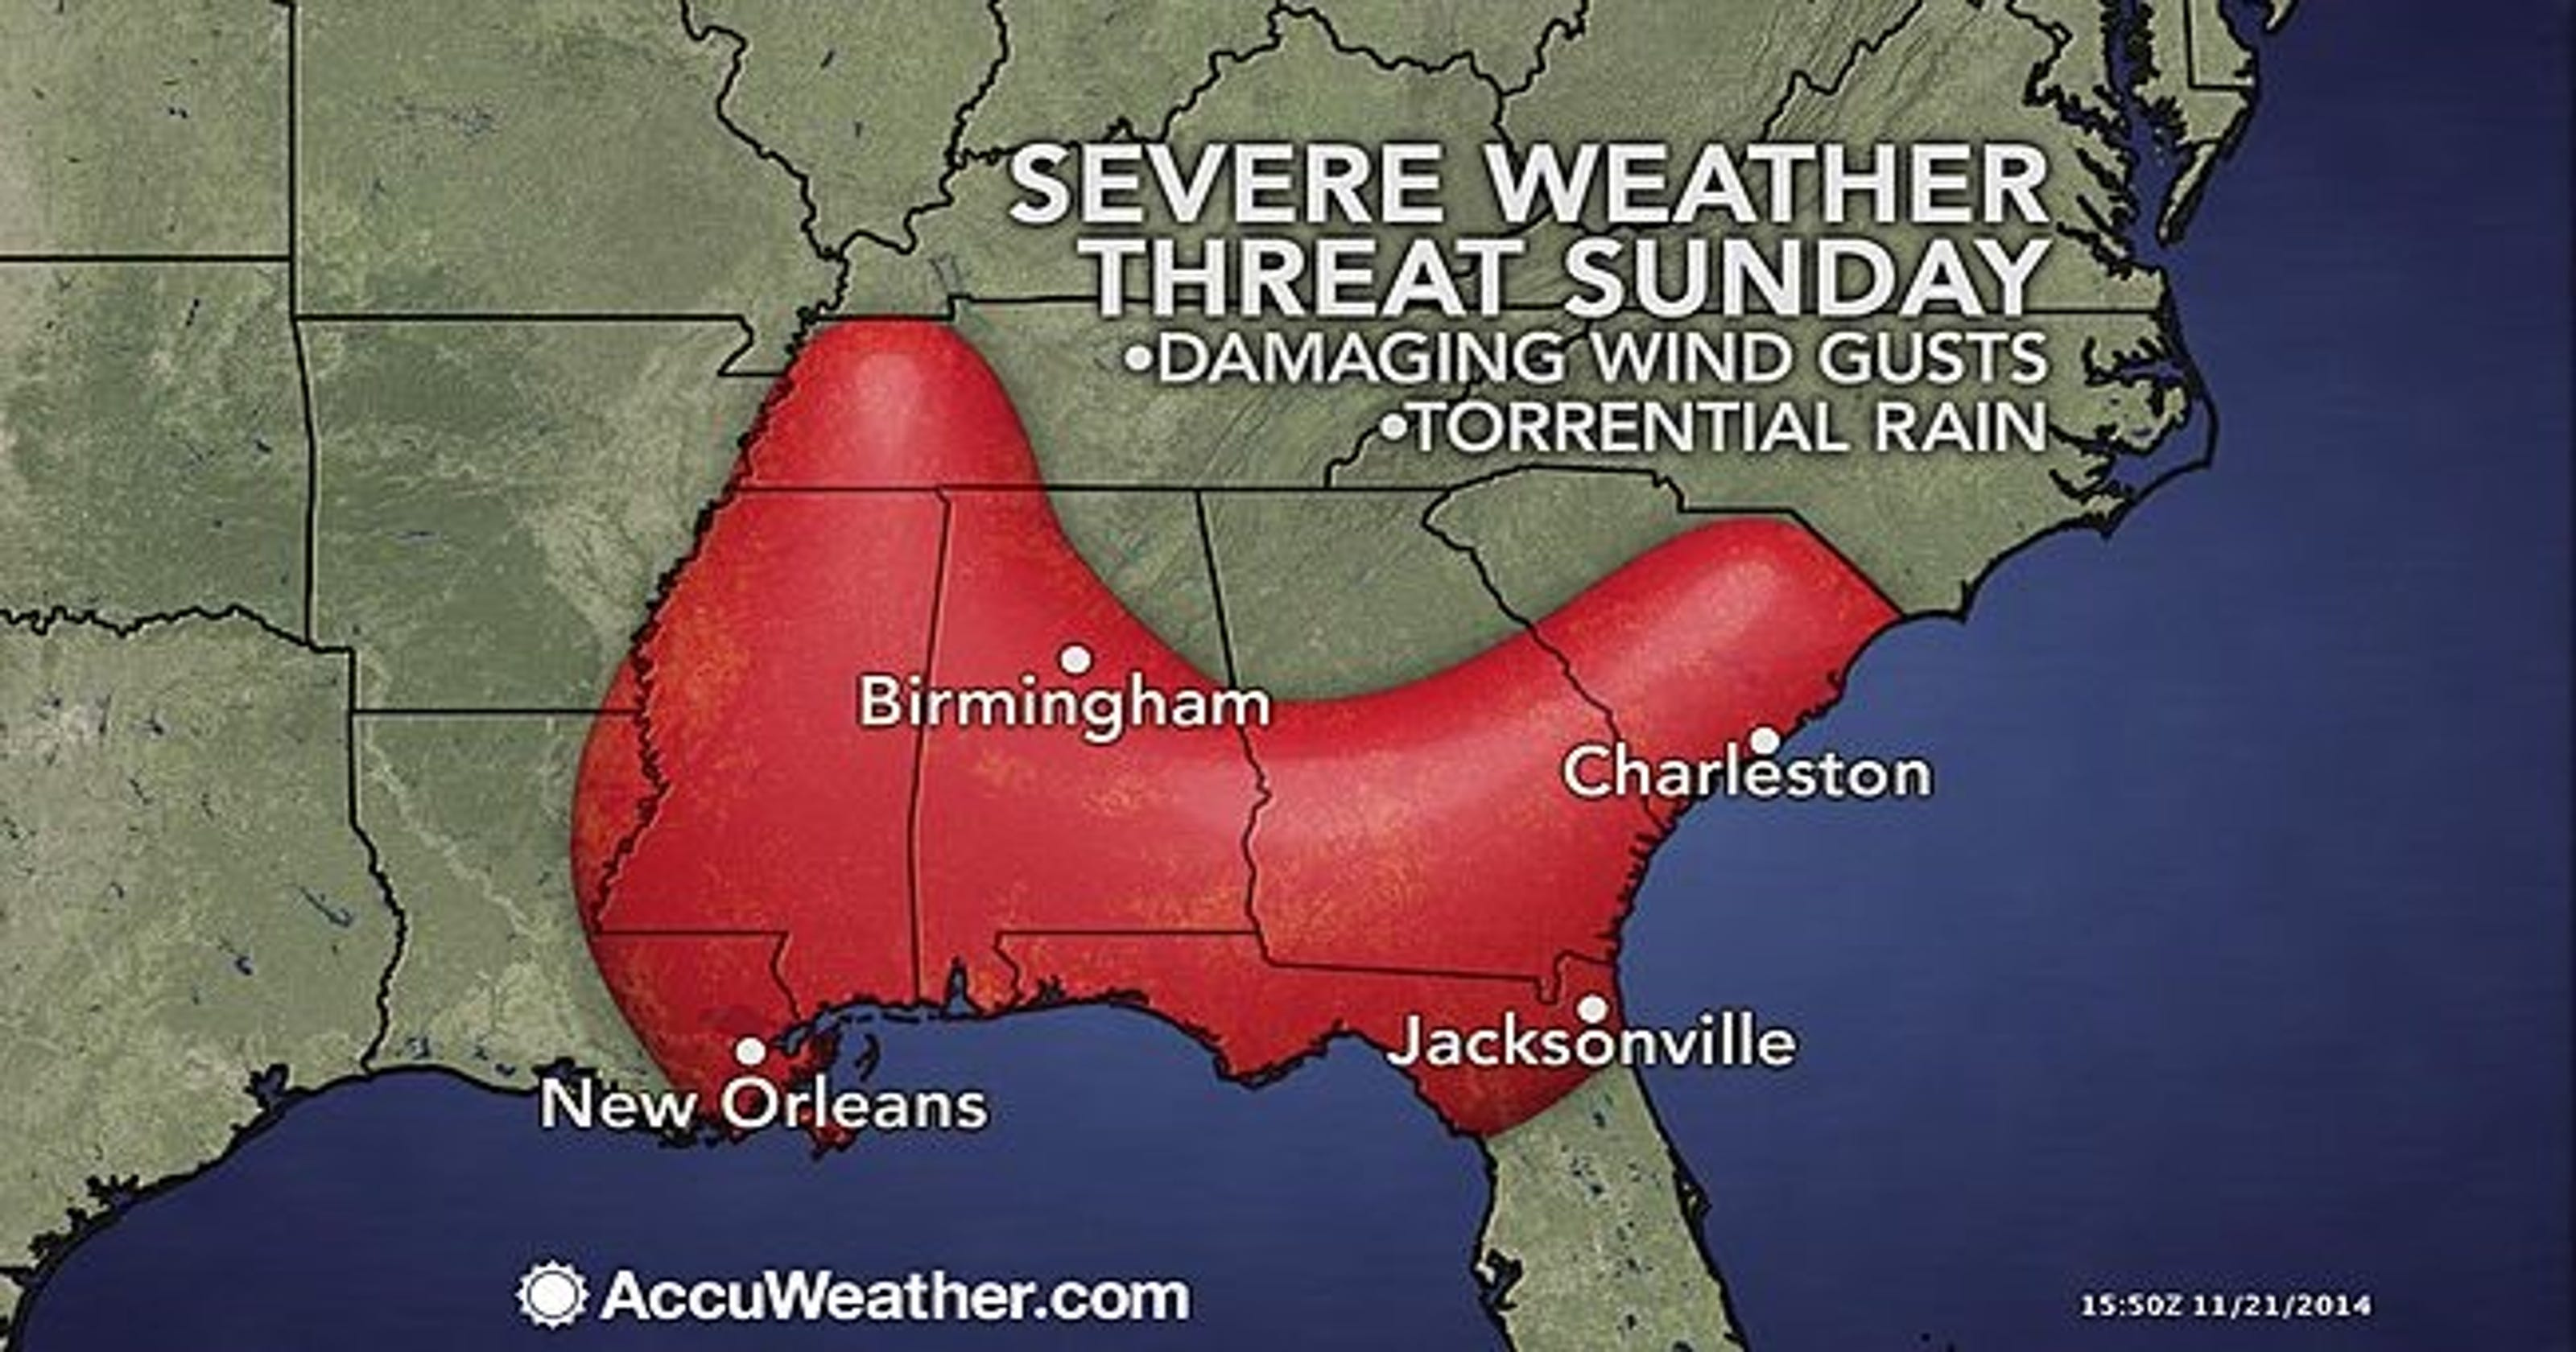 Accuweather Severe Weather Map.Severe Weather Threatens South As Thanksgiving Travel Begins